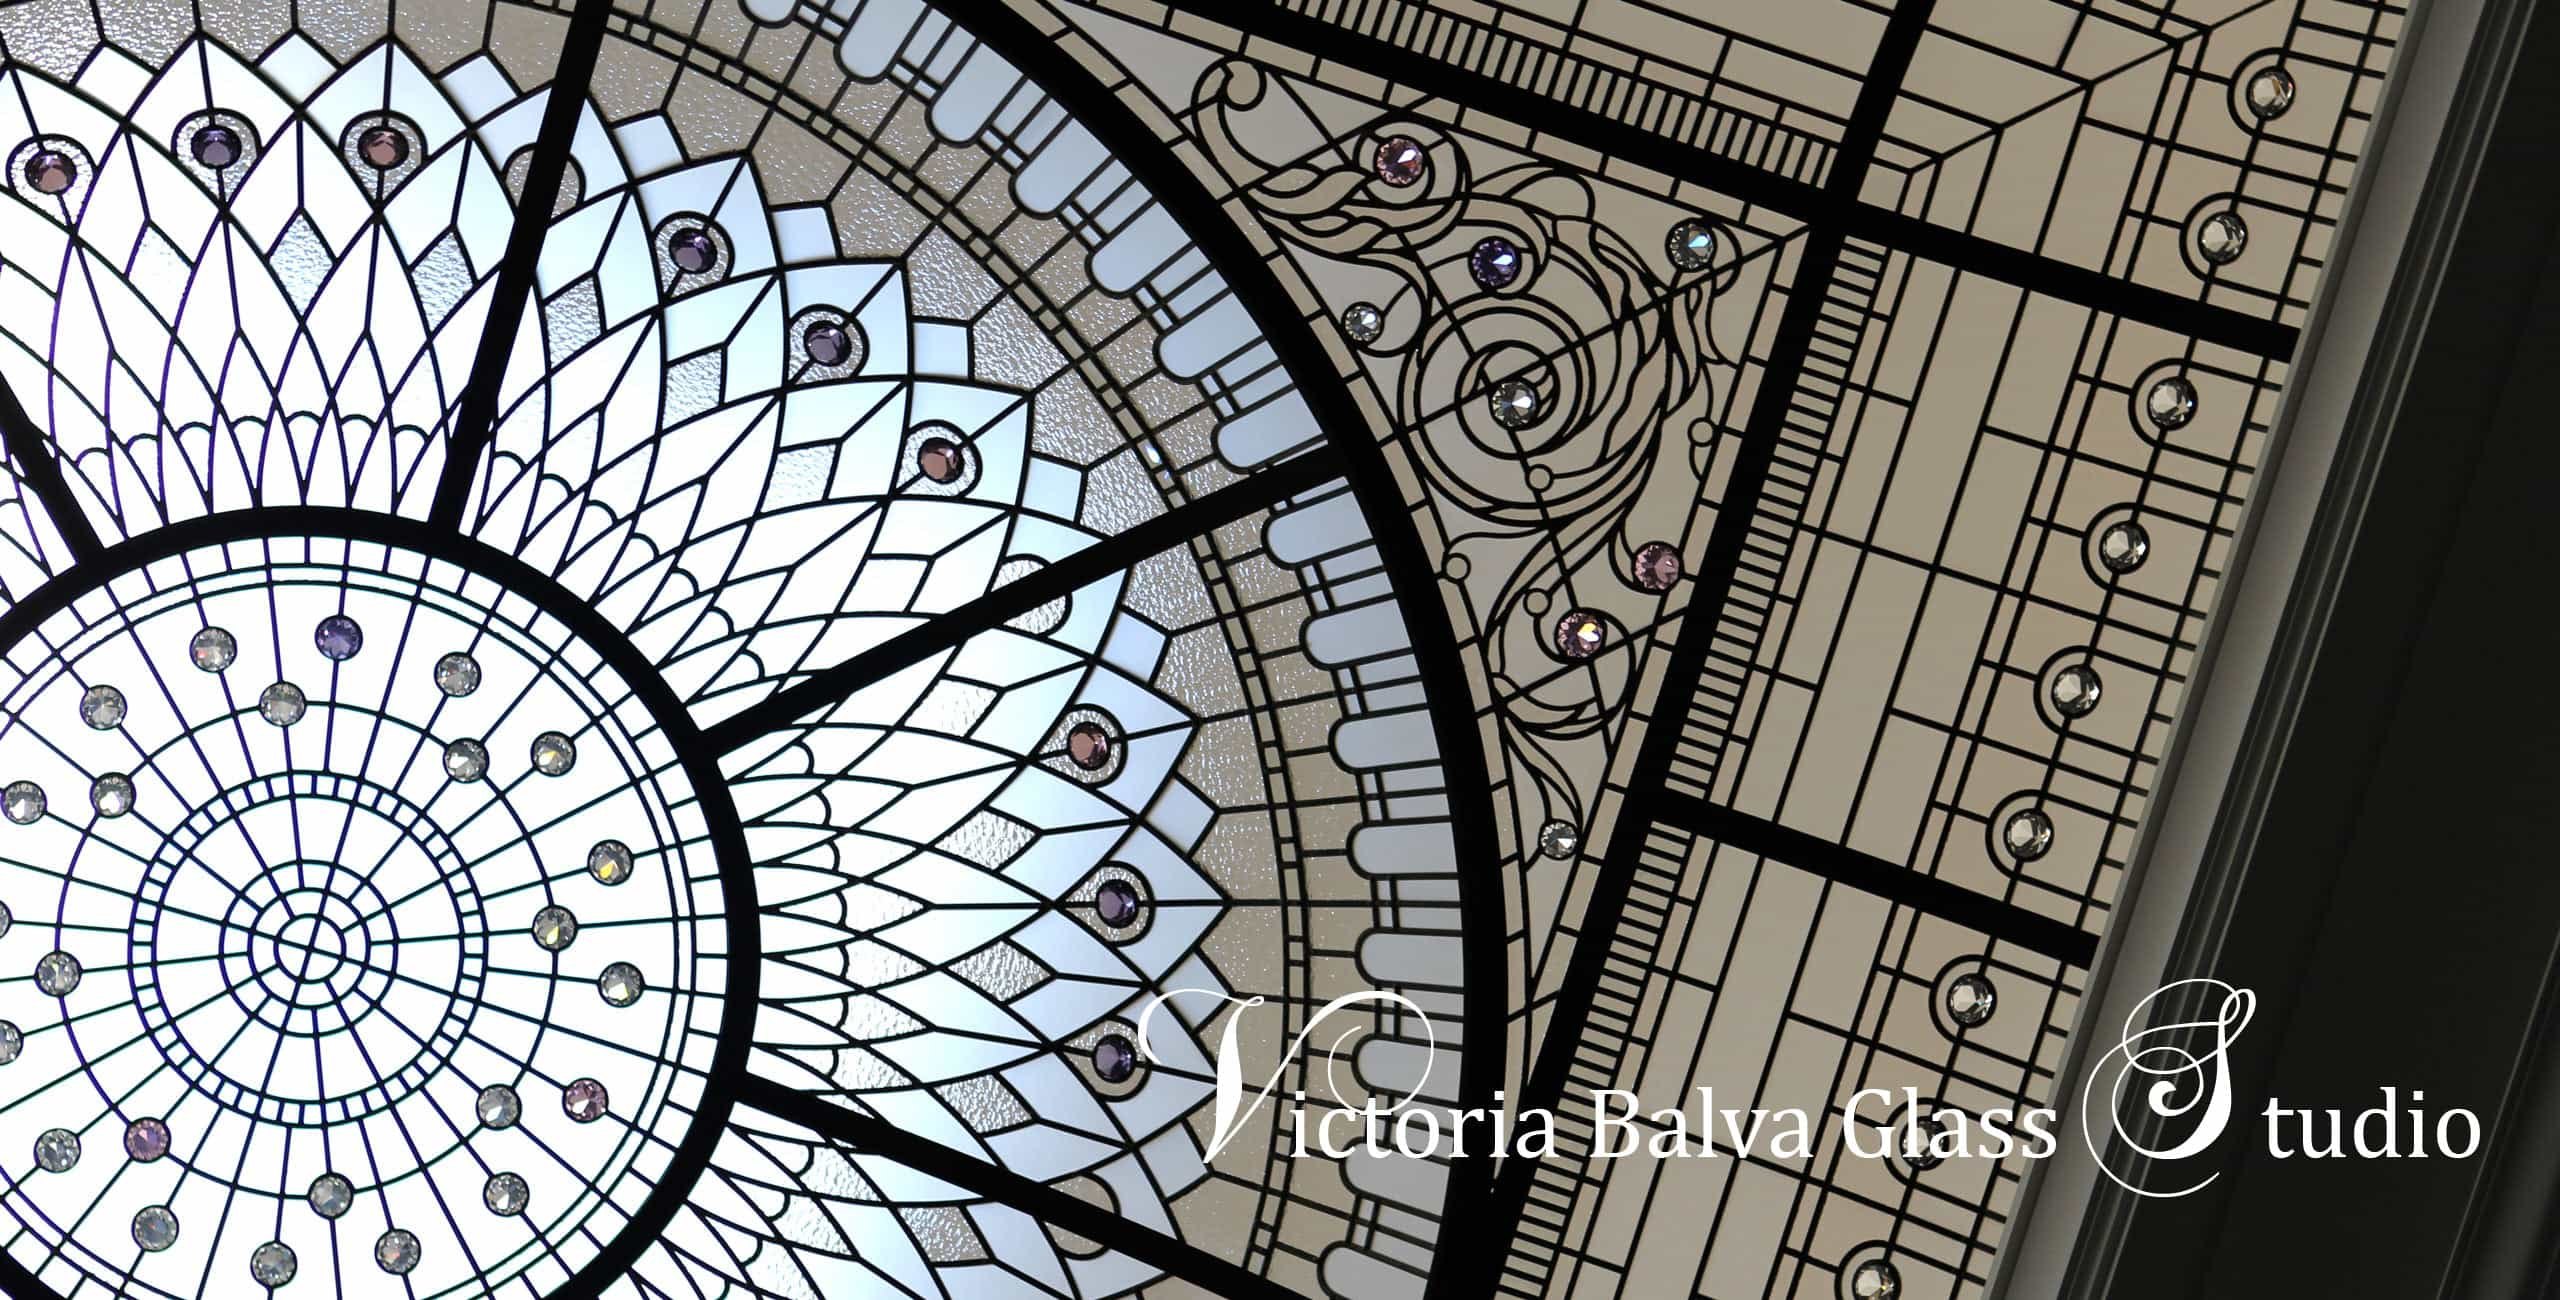 Elegant and beautiful leaded glass domed skylight ceiling inspired by the Palm Court at the Plaza Hotel